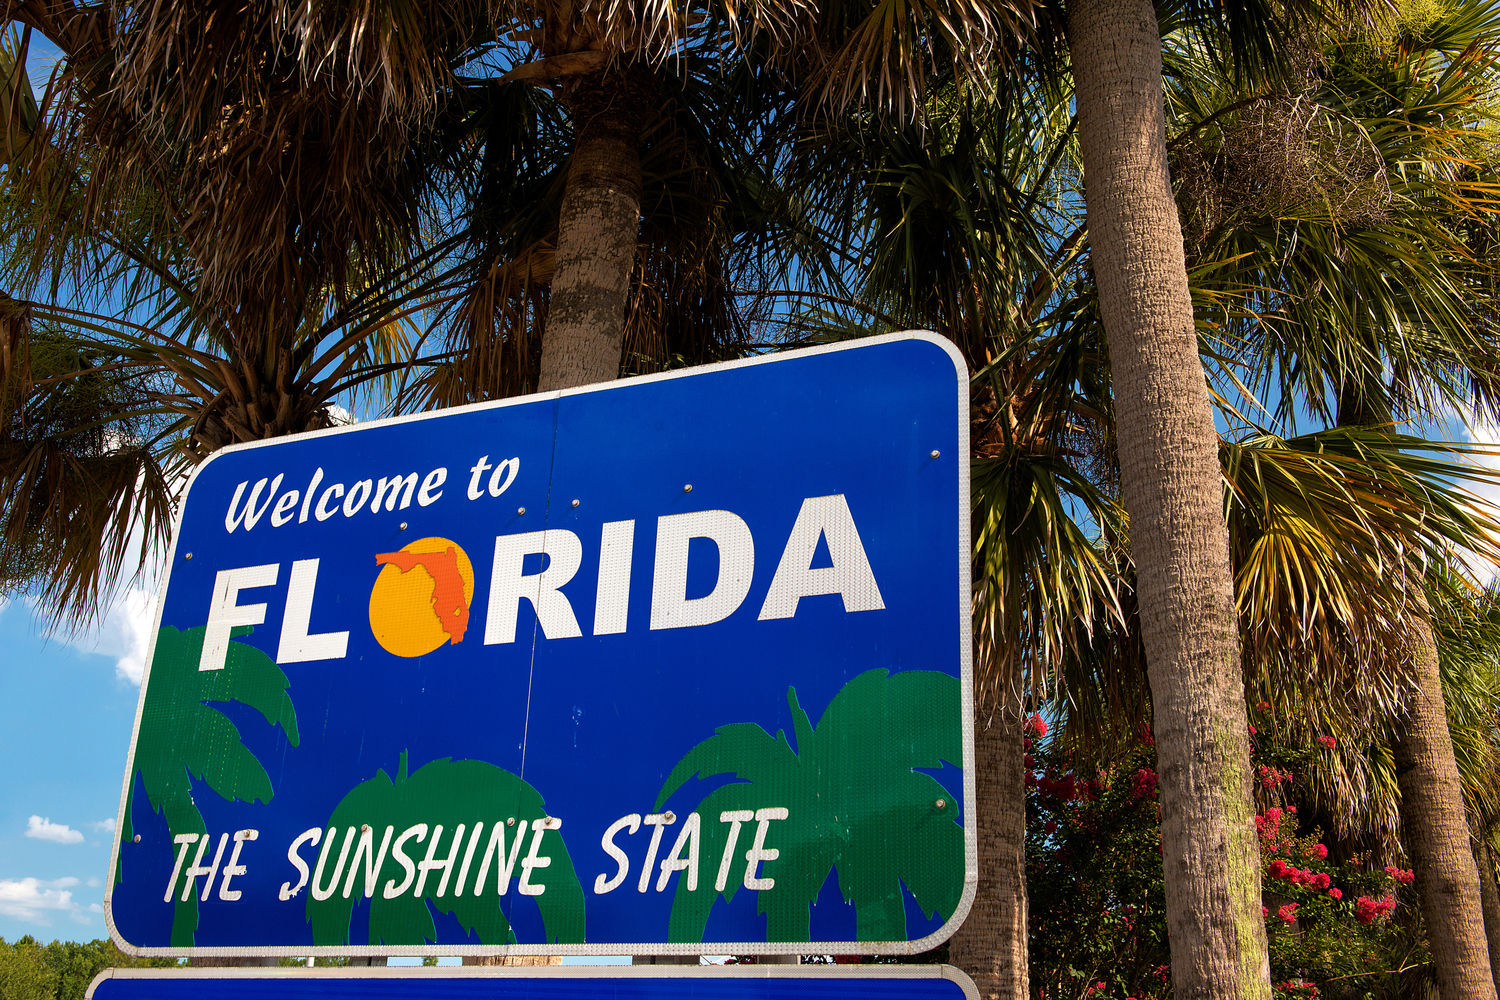 OSCR360 to demo with agencies in Florida